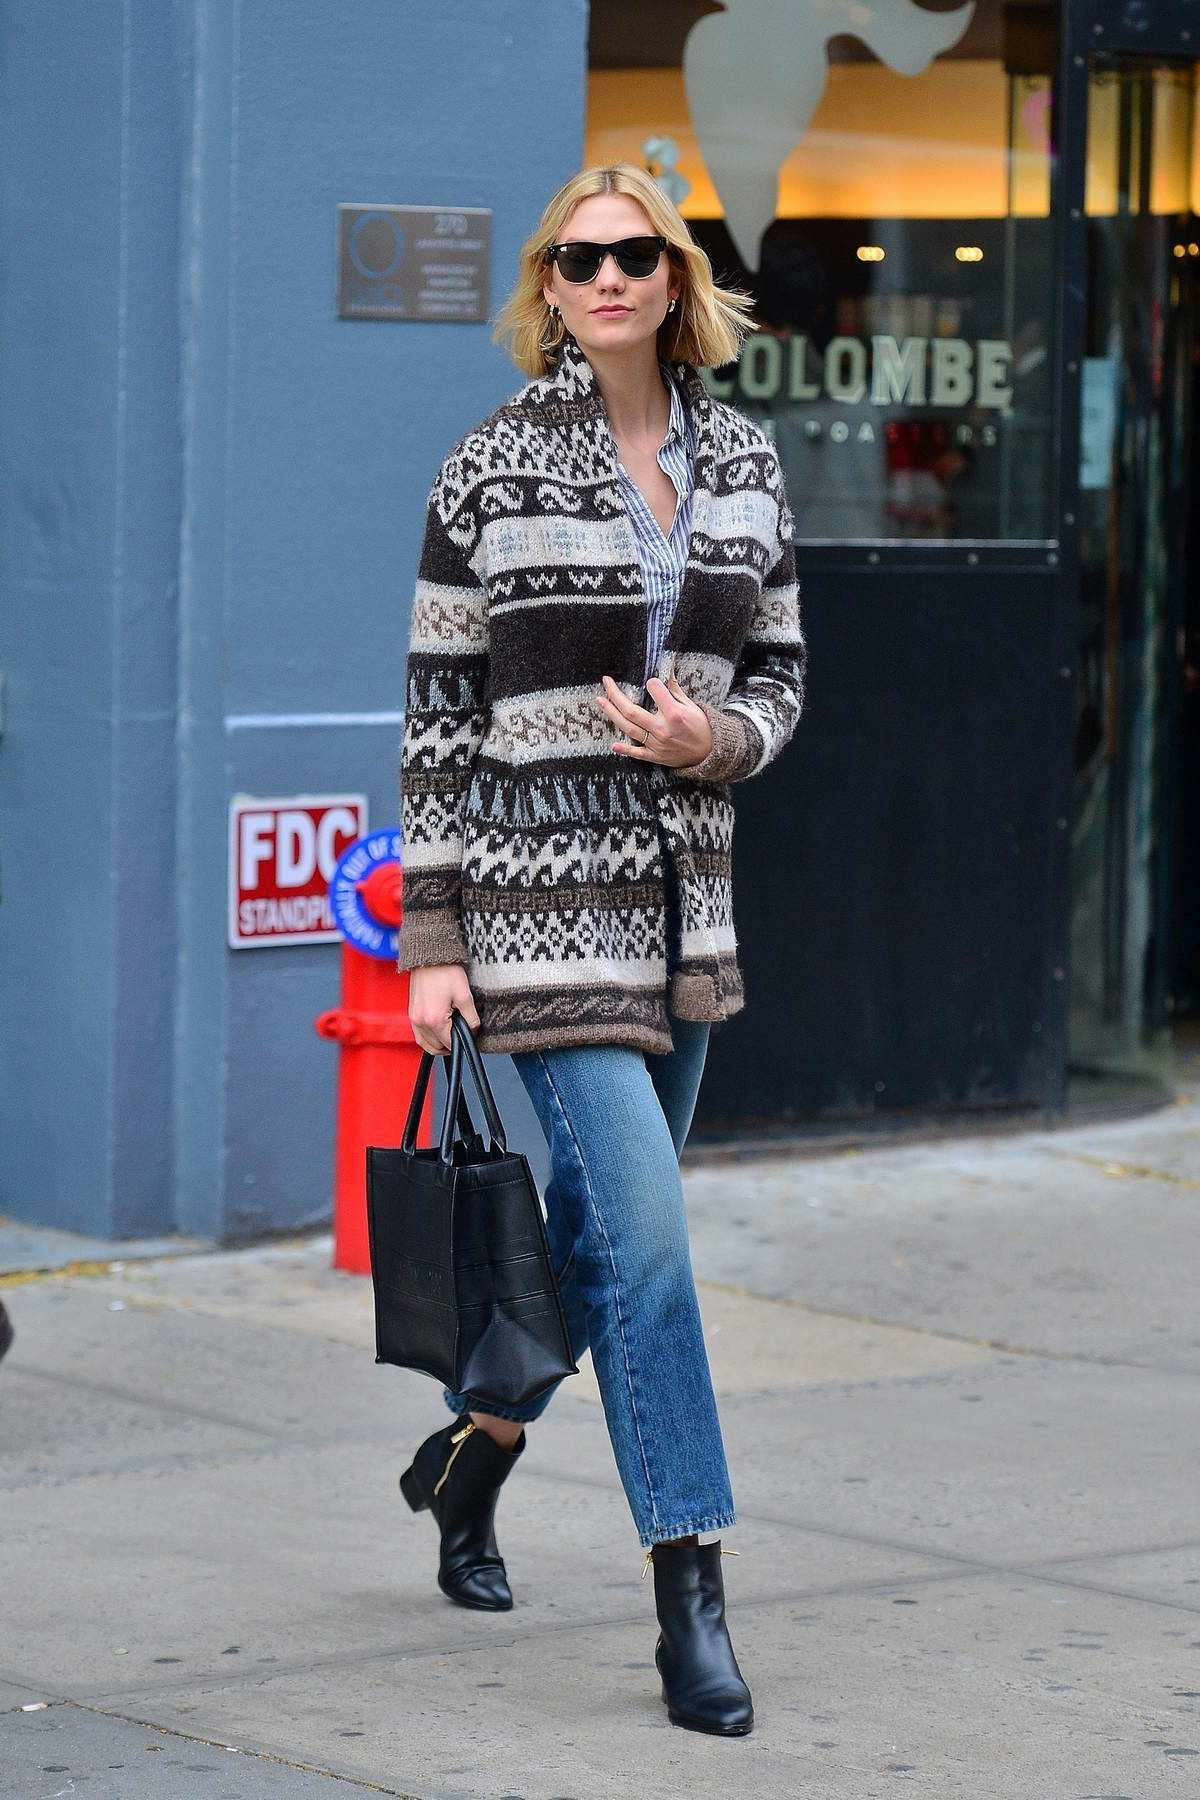 Karlie Kloss shares a smile on her way to a local eatery in New York City